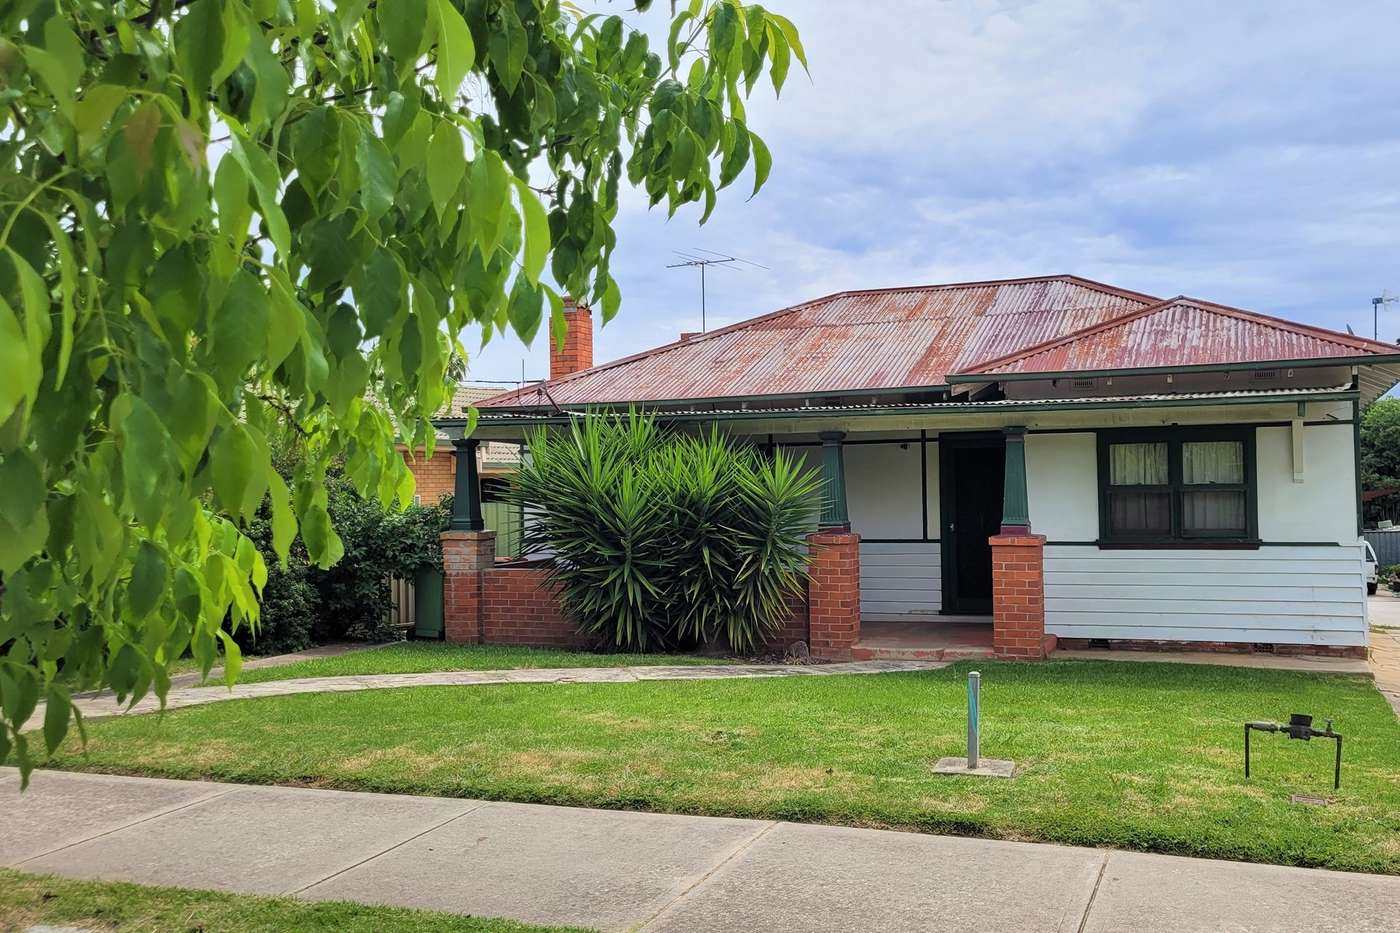 Main view of Homely house listing, 547 Schubach Street, Albury, NSW 2640